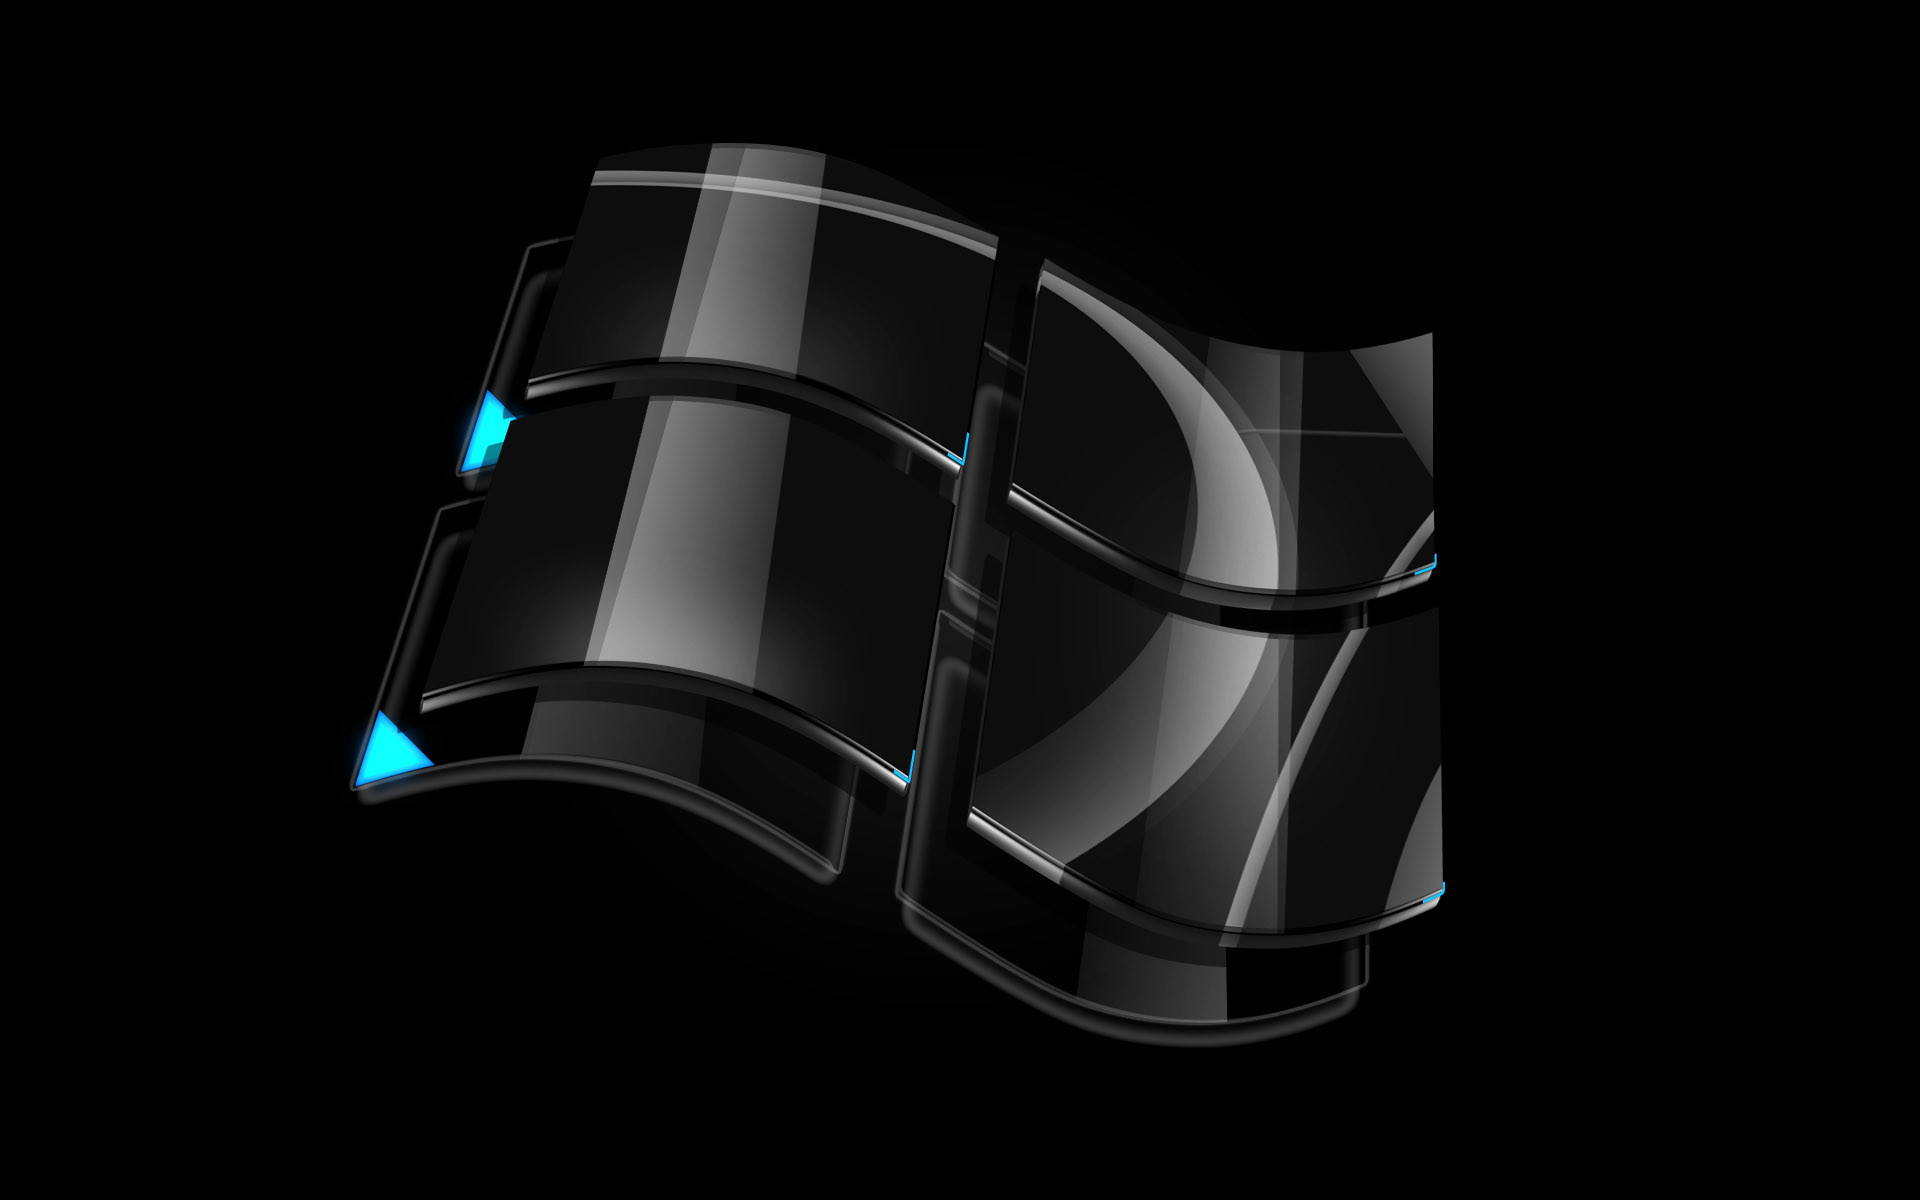 Black Windows 7 Wallpaper 69 Pictures